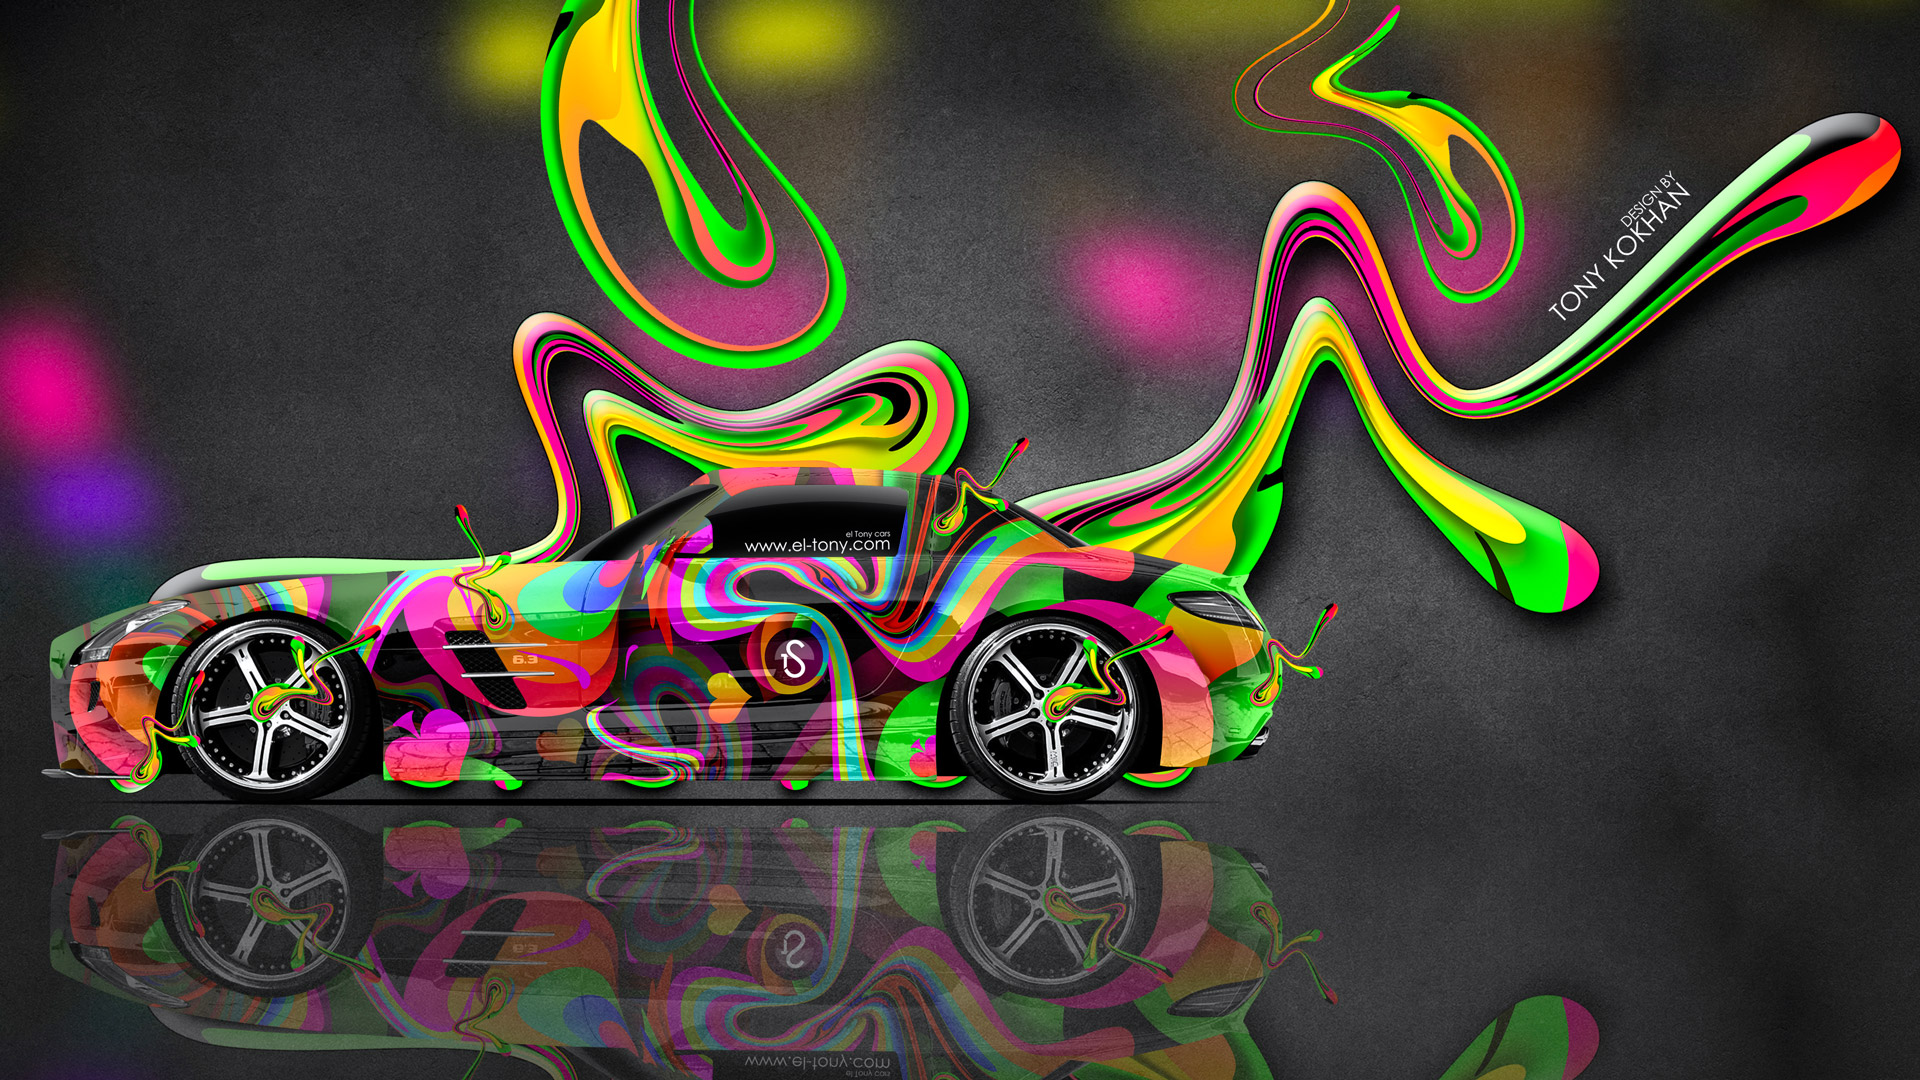 Mercedes-Benz-SLS-AMG-Side-Super-Abstract-Aerography-Plastic-Car-2014-Art-Multicolors-HD-Wallpapers-desig-by-Tony-Kokhan-[www.el-tony.com]